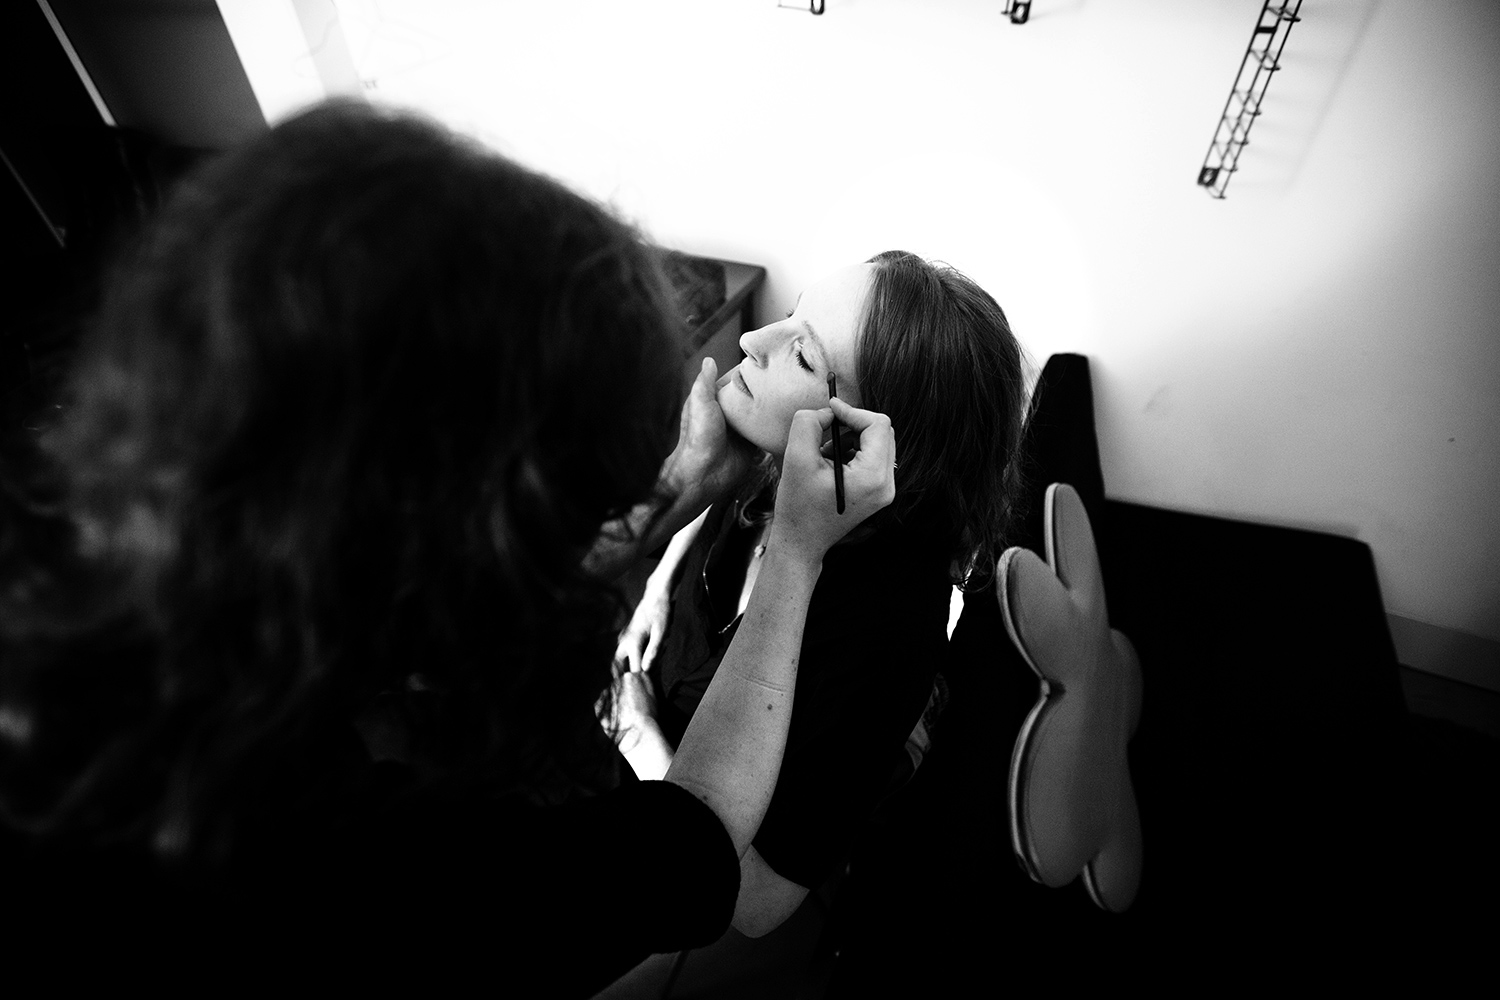 The Golden Glows - Backstage by Laurent Orseau - AB Salon - Brussels, Belgium #5